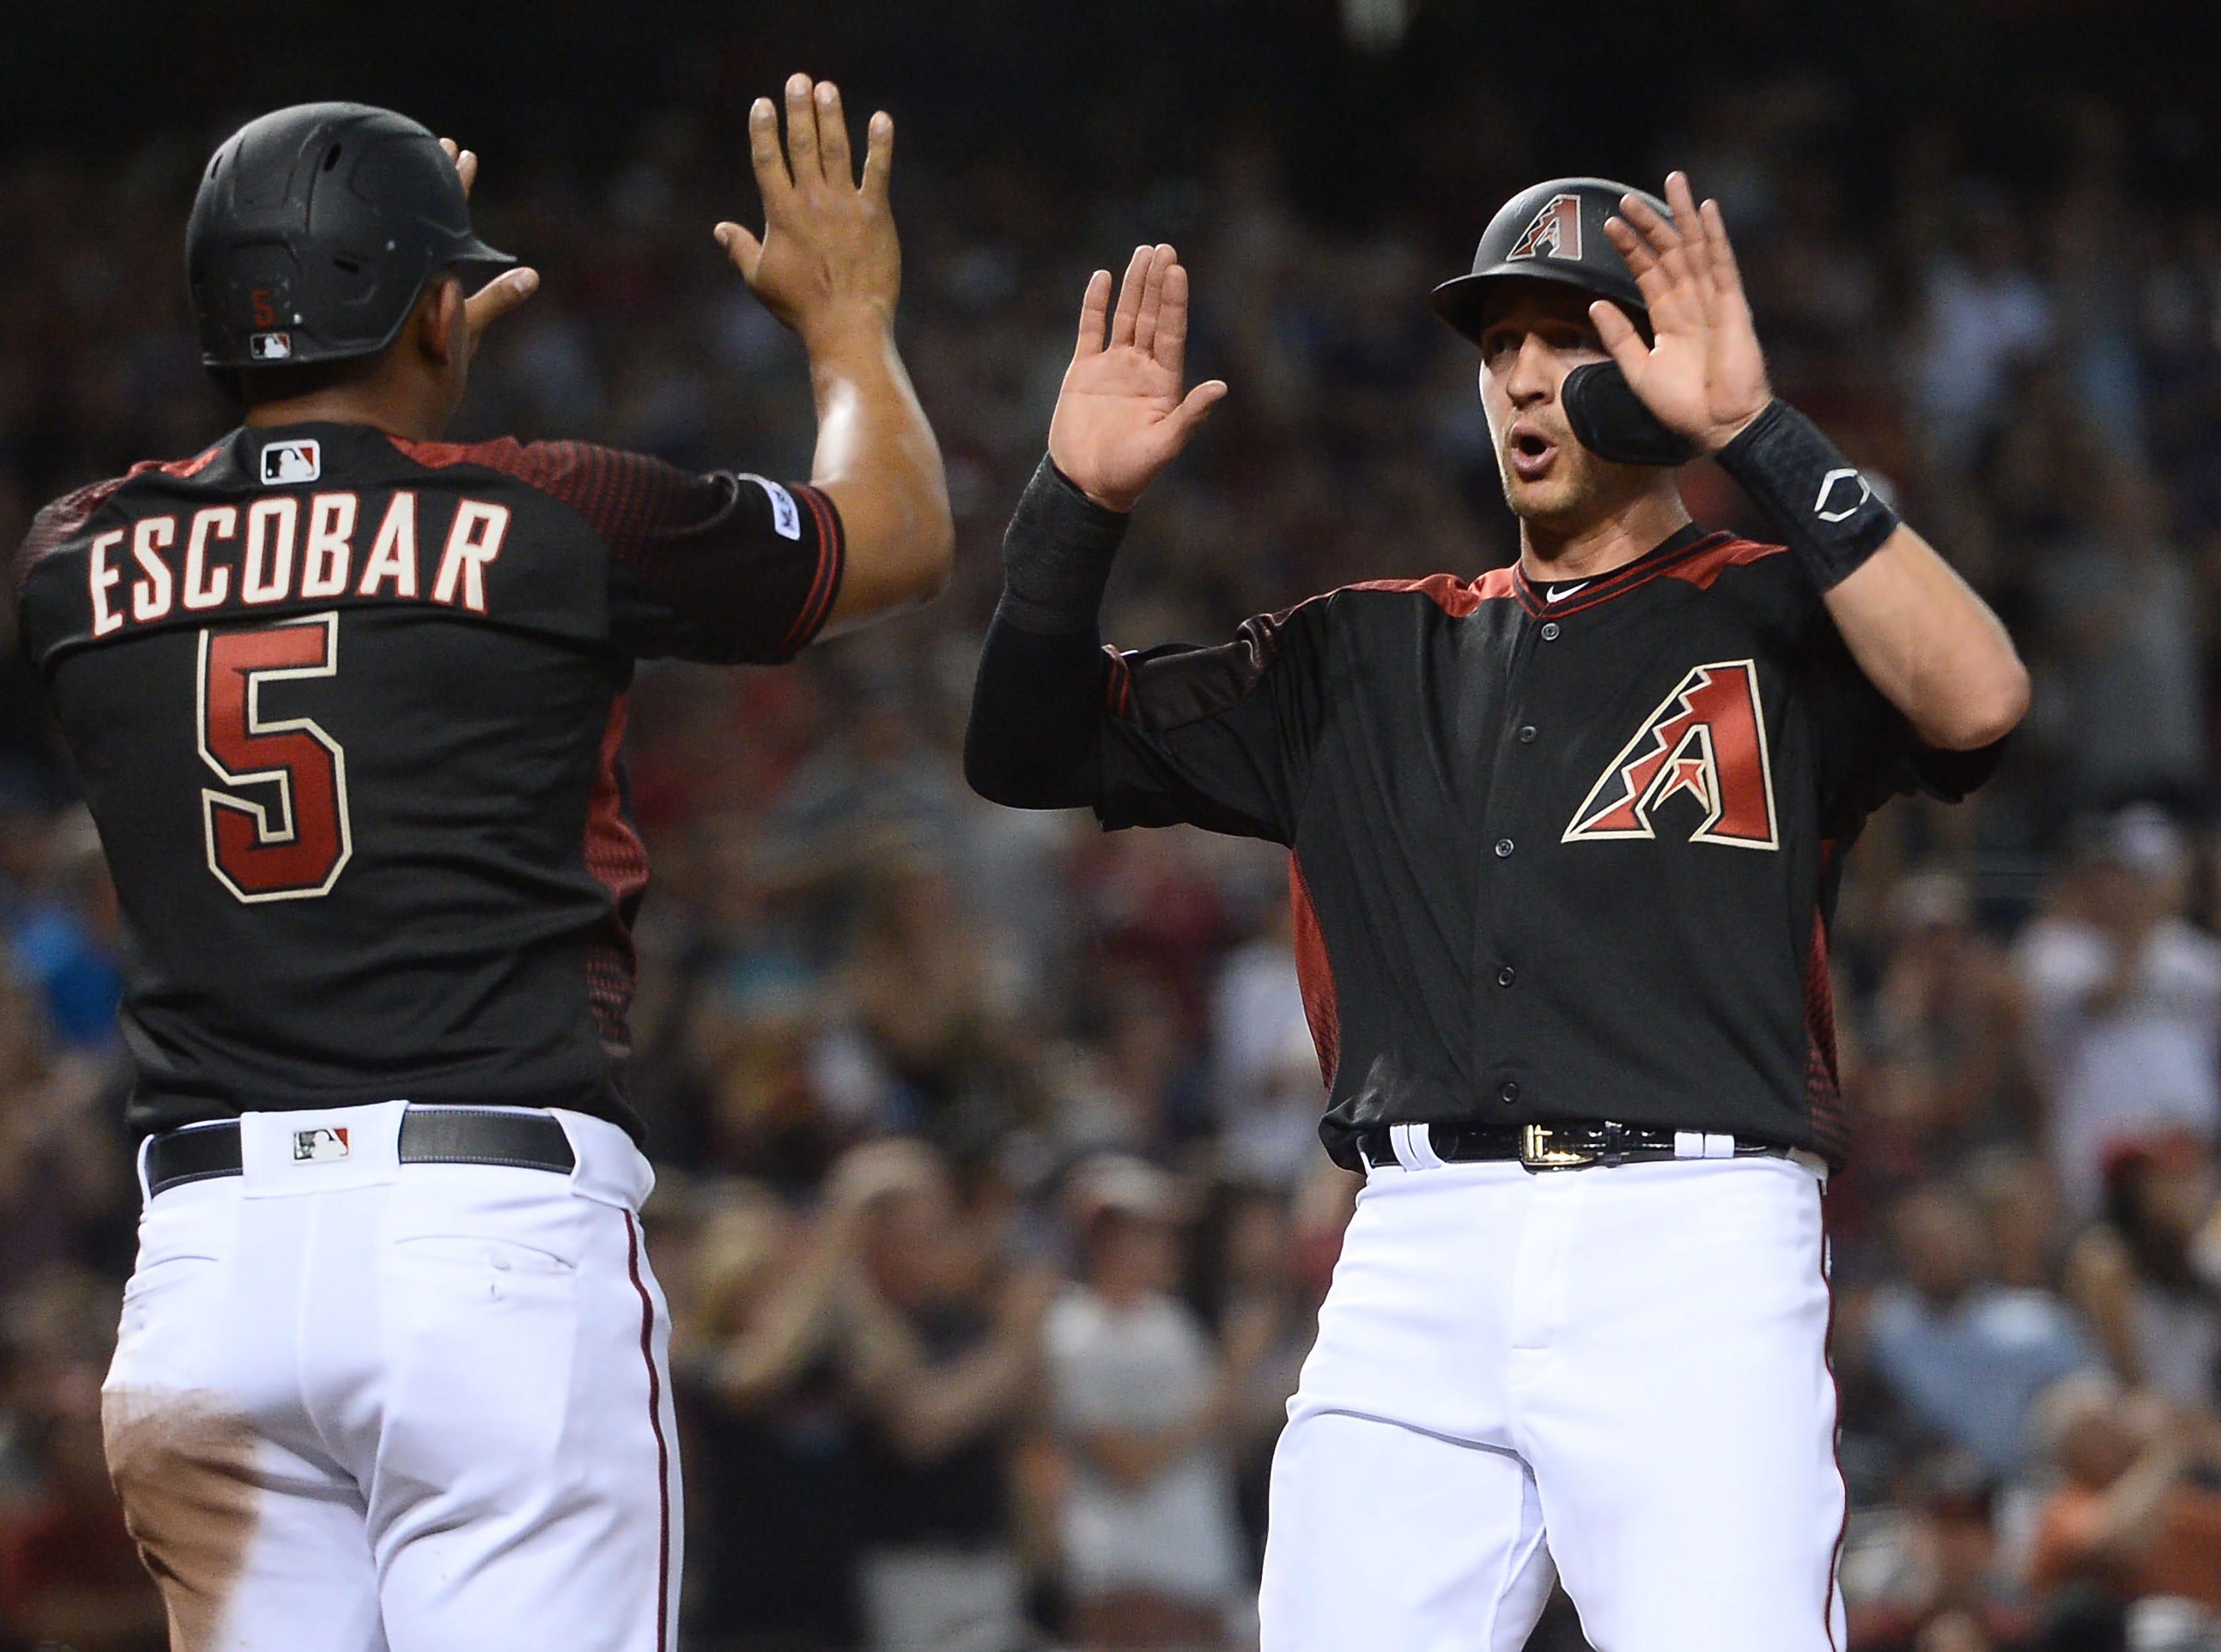 Apr 6, 2019; Phoenix, AZ, USA; Arizona Diamondbacks third baseman Eduardo Escobar (5) and Arizona Diamondbacks shortstop Nick Ahmed (13) slap hands after scoring runs against the Boston Red Sox during the second inning at Chase Field. Mandatory Credit: Joe Camporeale-USA TODAY Sports